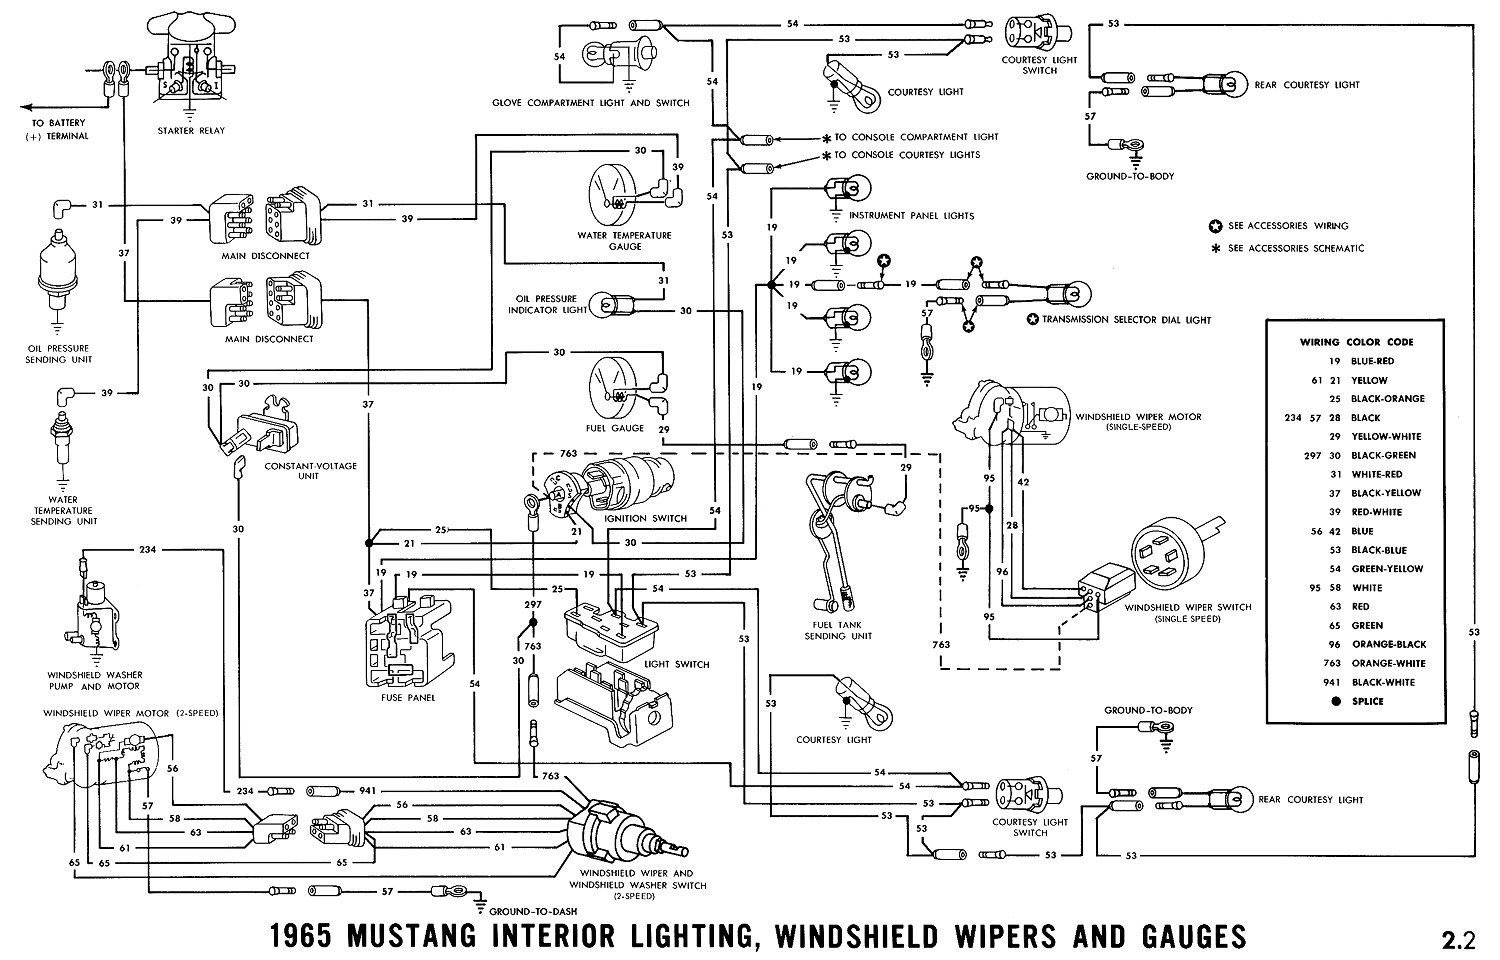 1965g 1965 mustang wiring diagrams average joe restoration 1965 ford mustang wiring diagrams at arjmand.co